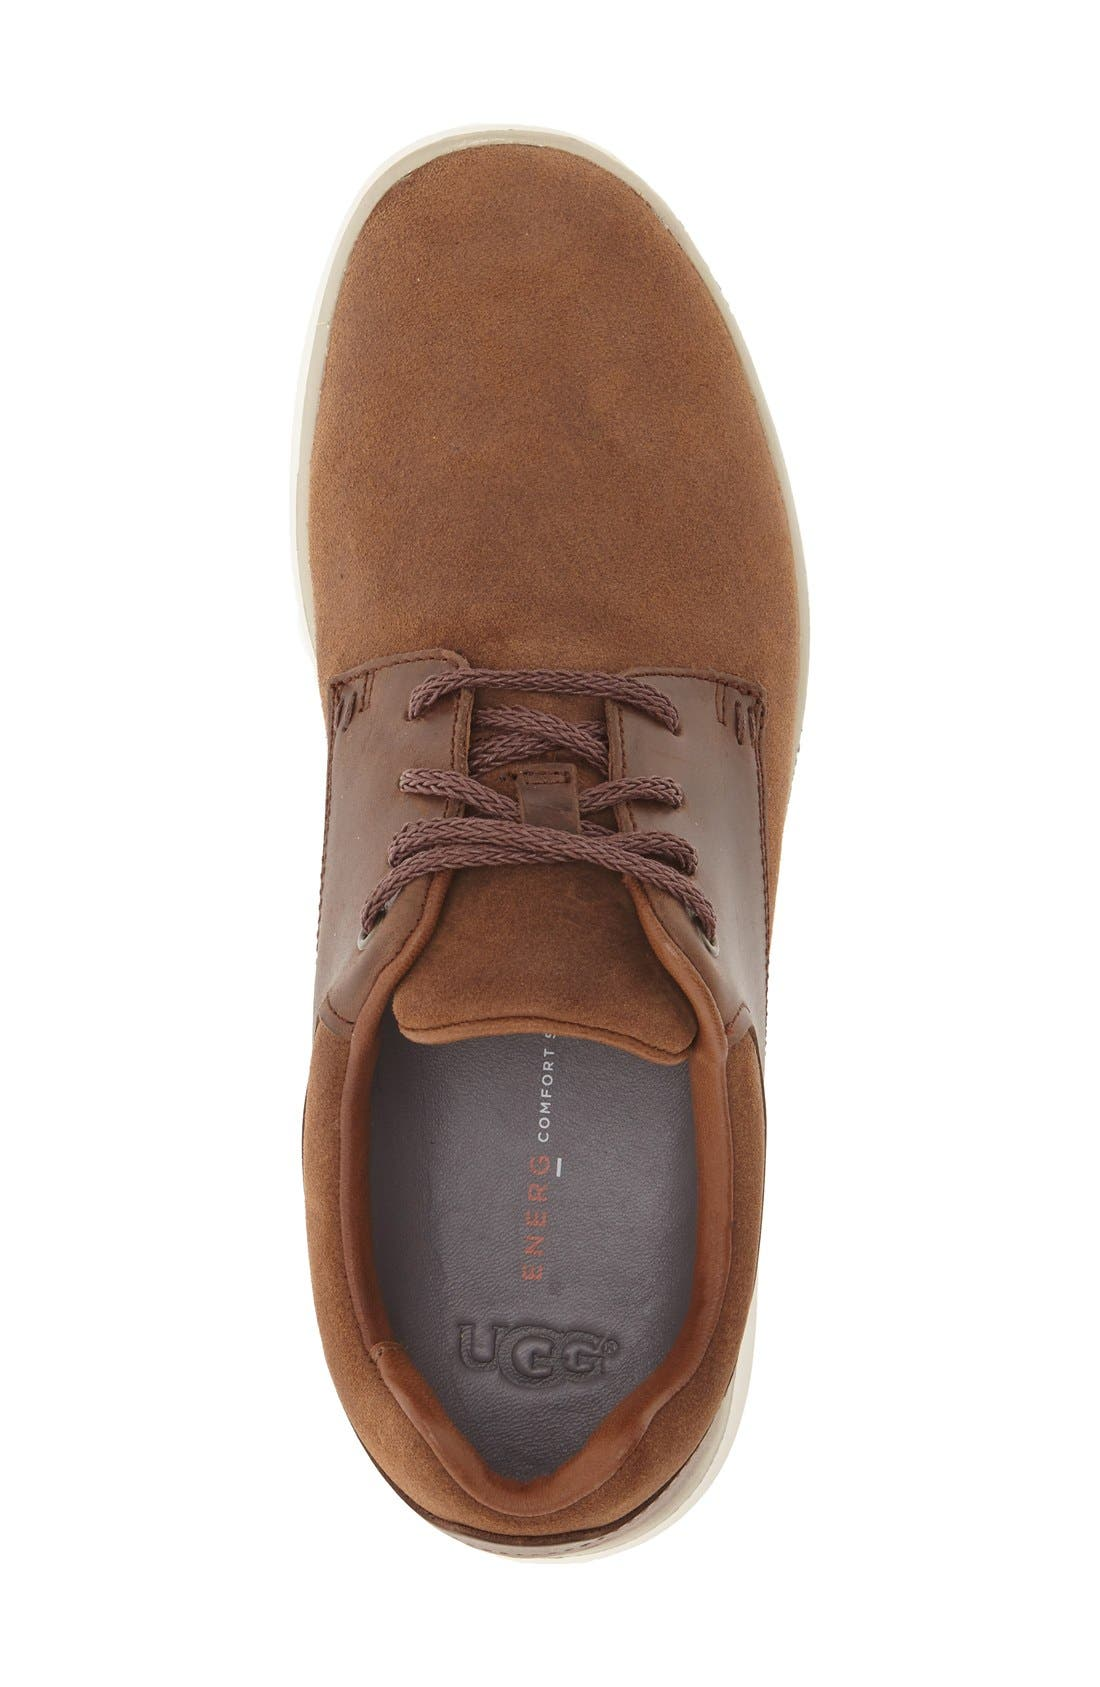 'Hepner' Sneaker,                             Alternate thumbnail 3, color,                             Chestnut